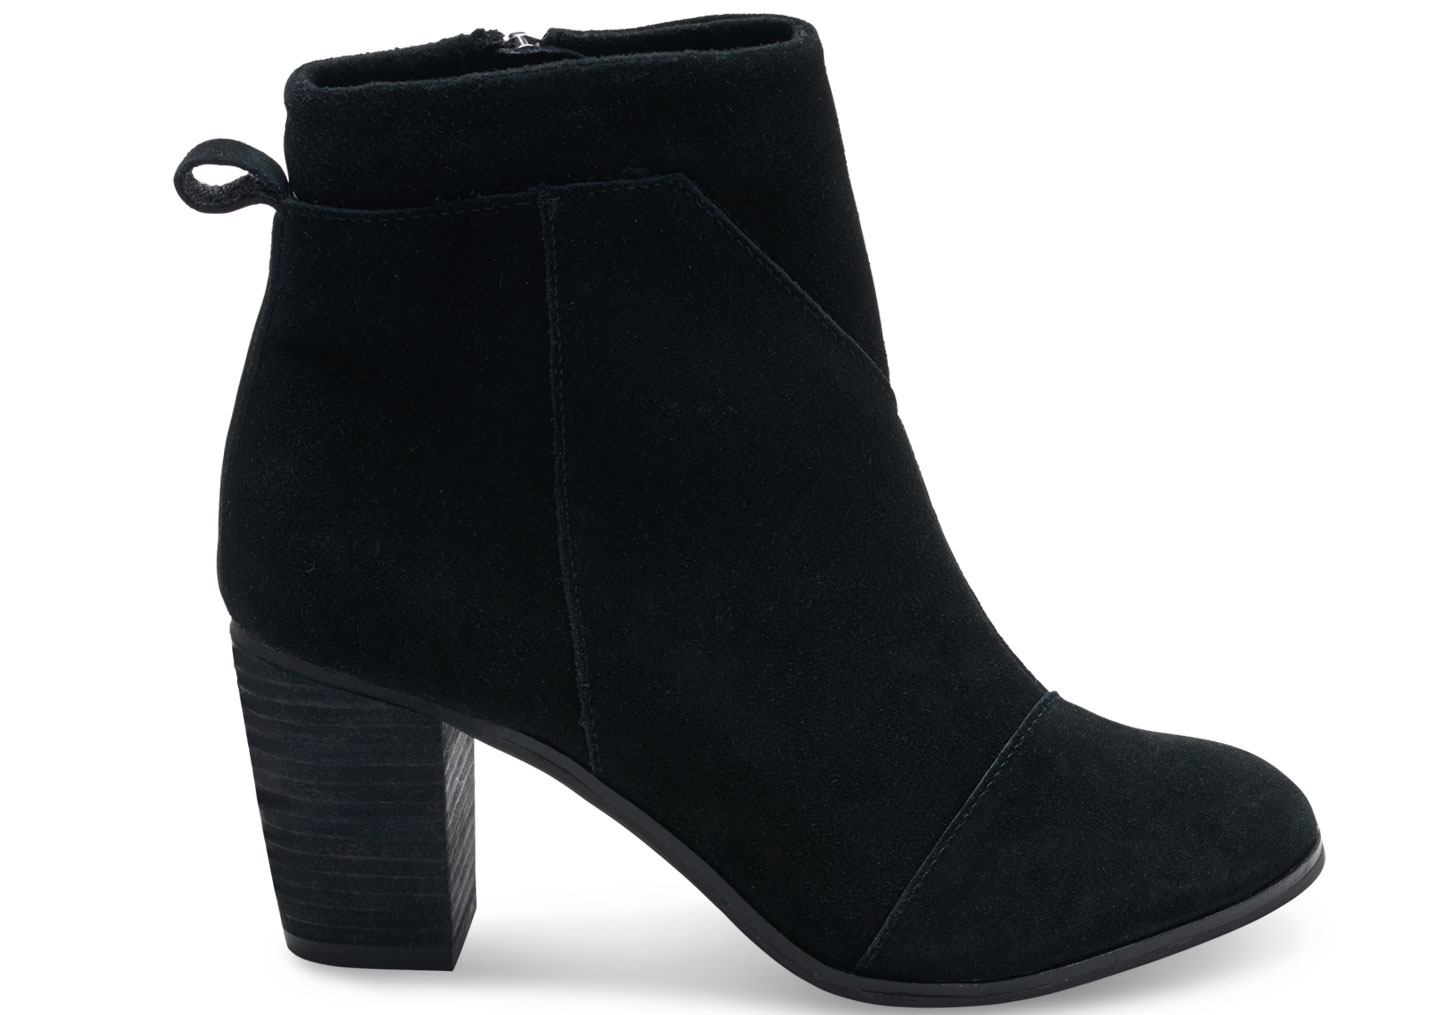 Shop Women's Boots And Booties At coolmfilehj.cf Enjoy Free Shipping & Returns On All Orders.